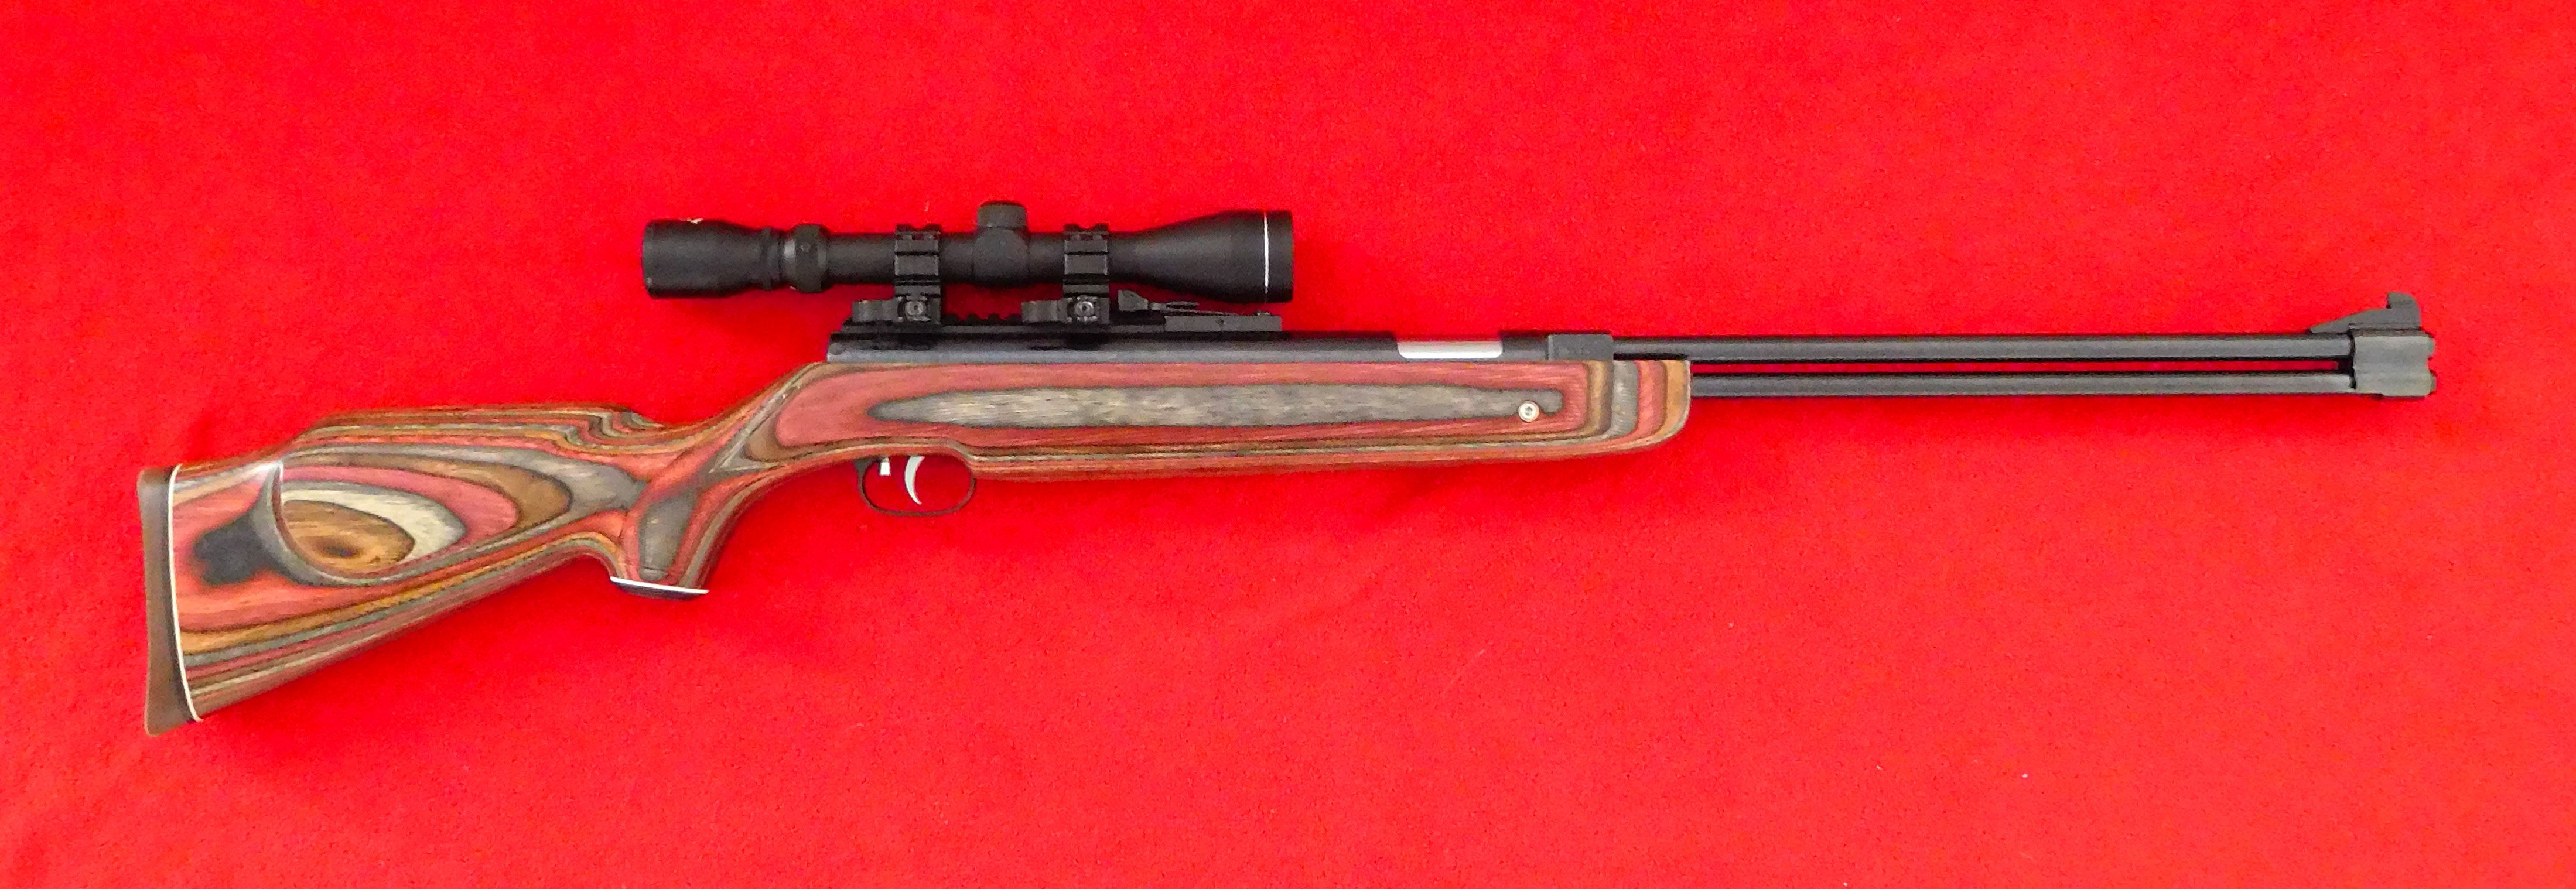 Must have springers? - Airgun Nation